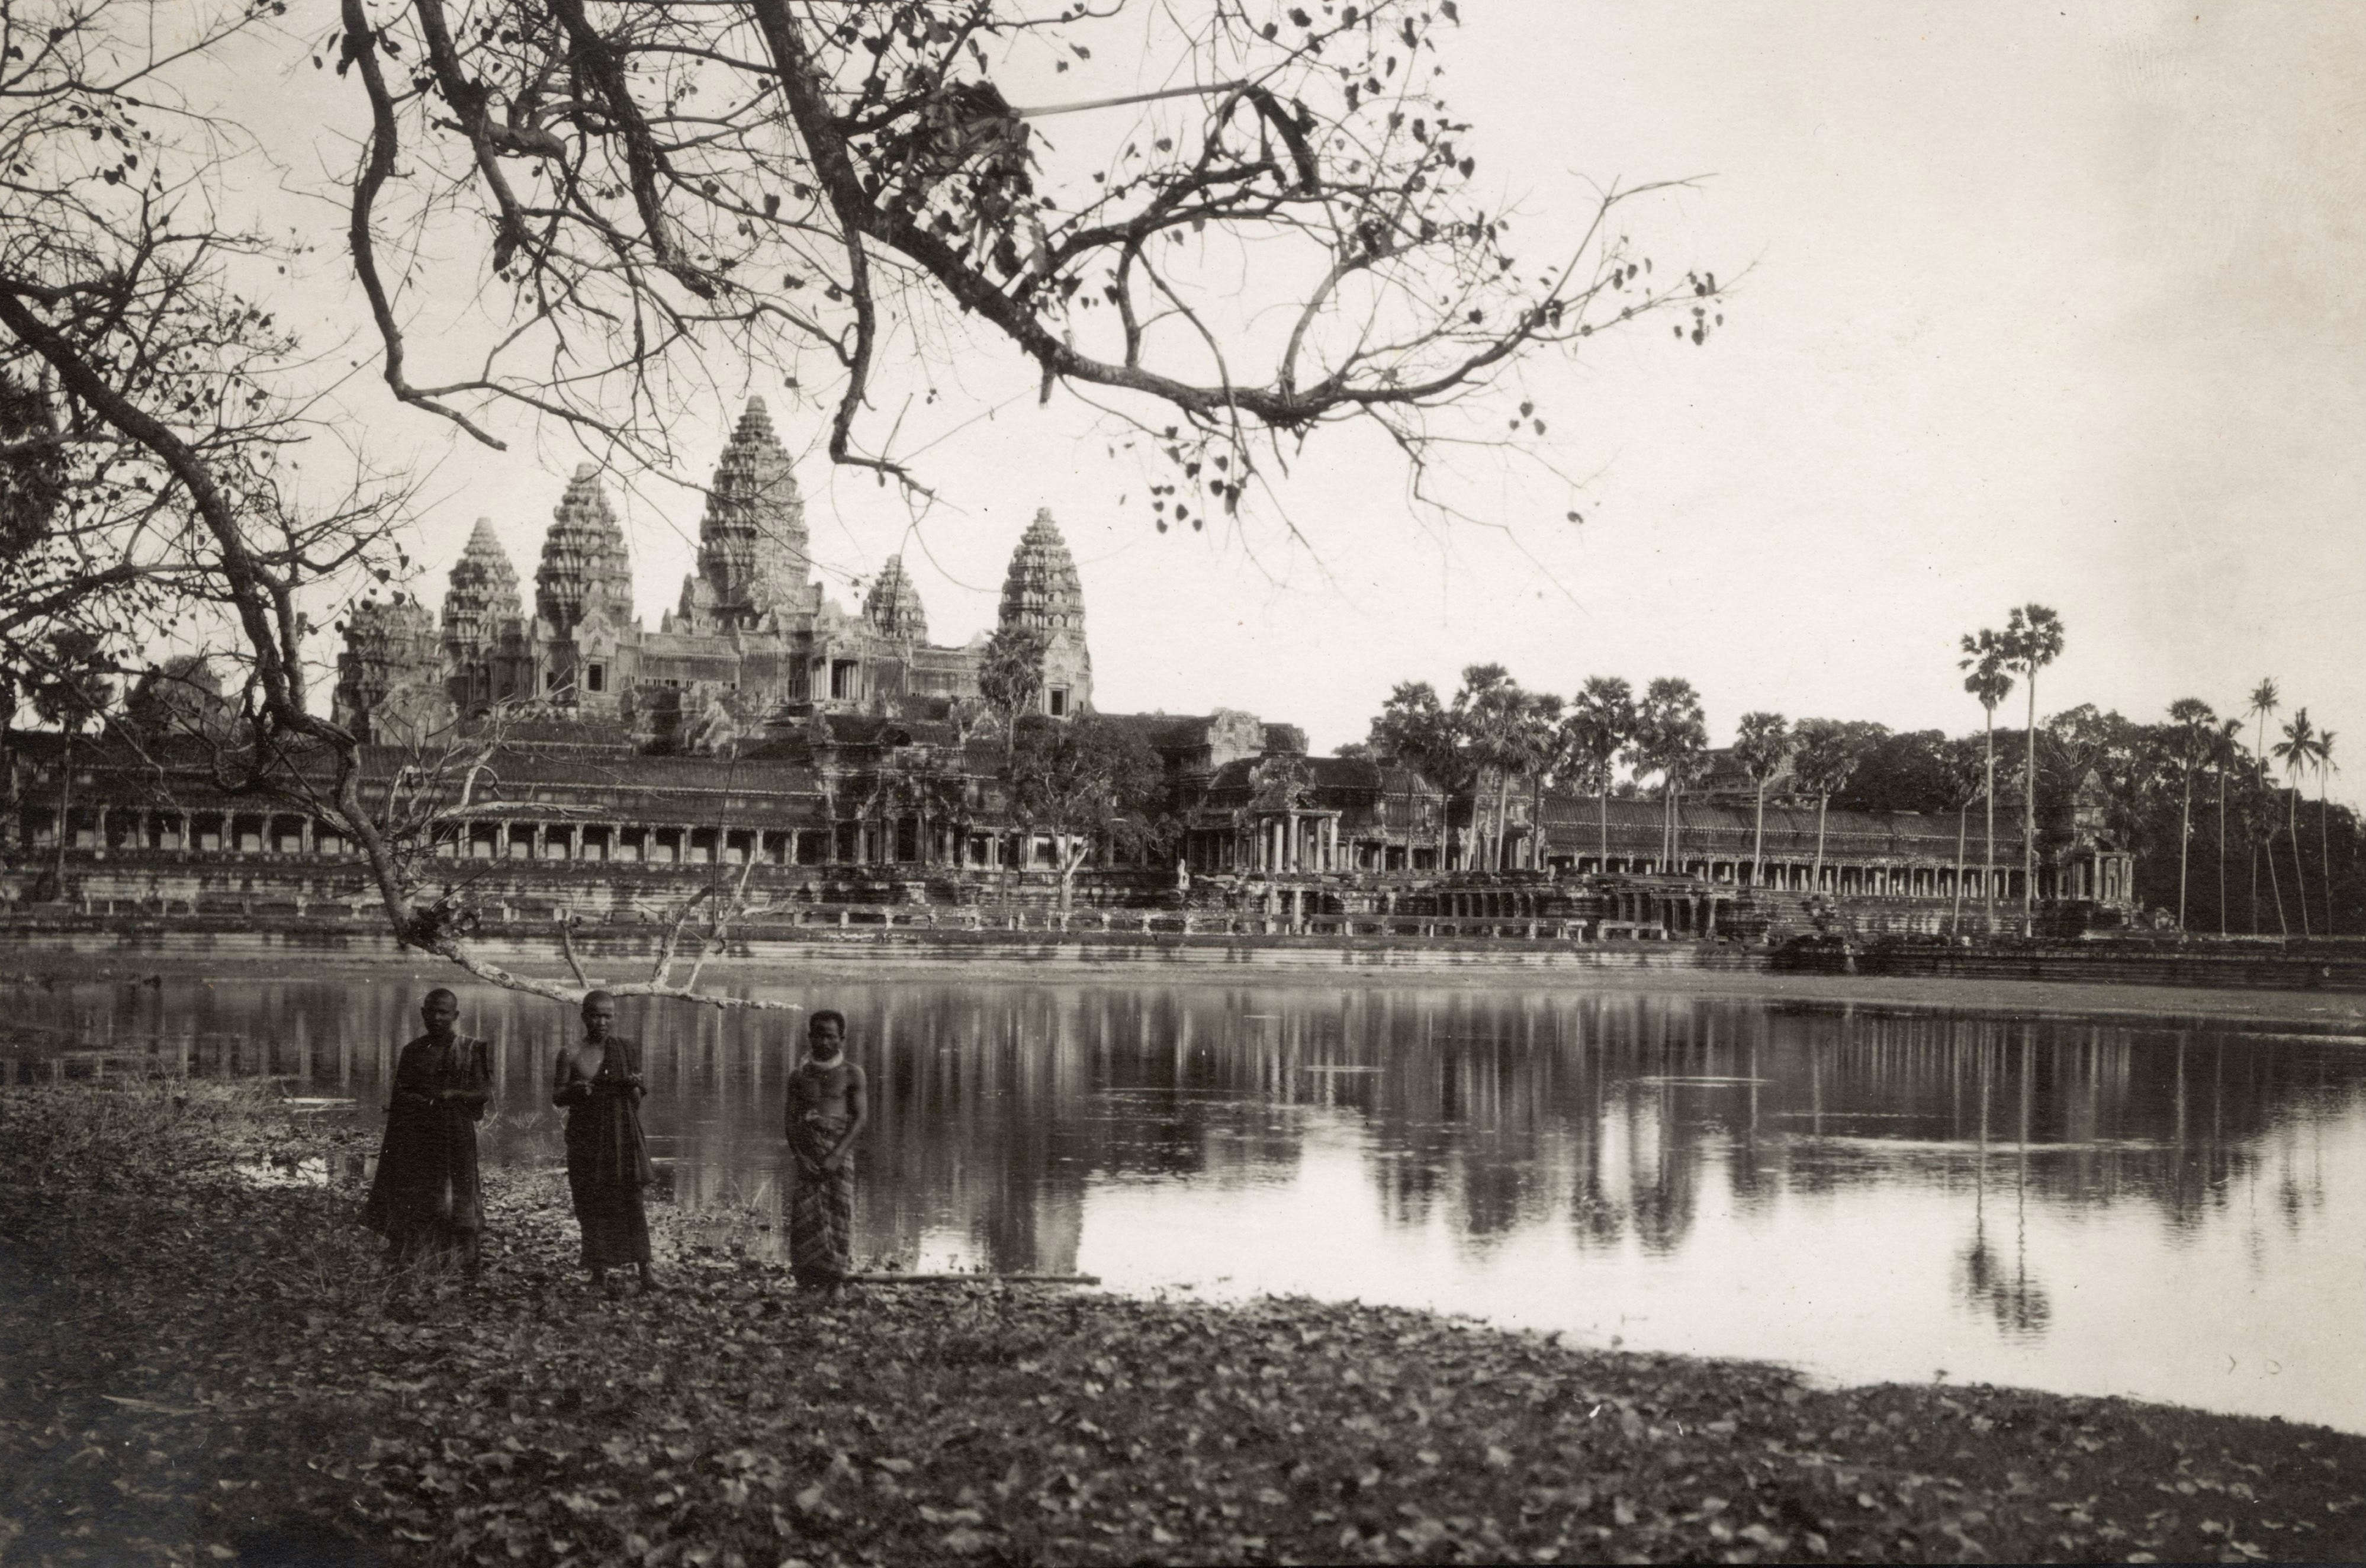 Slide 38 of 55: View of the Angkor temple (Cambodia). Ca. 1910. (Photo by adoc-photos/Corbis via Getty Images)